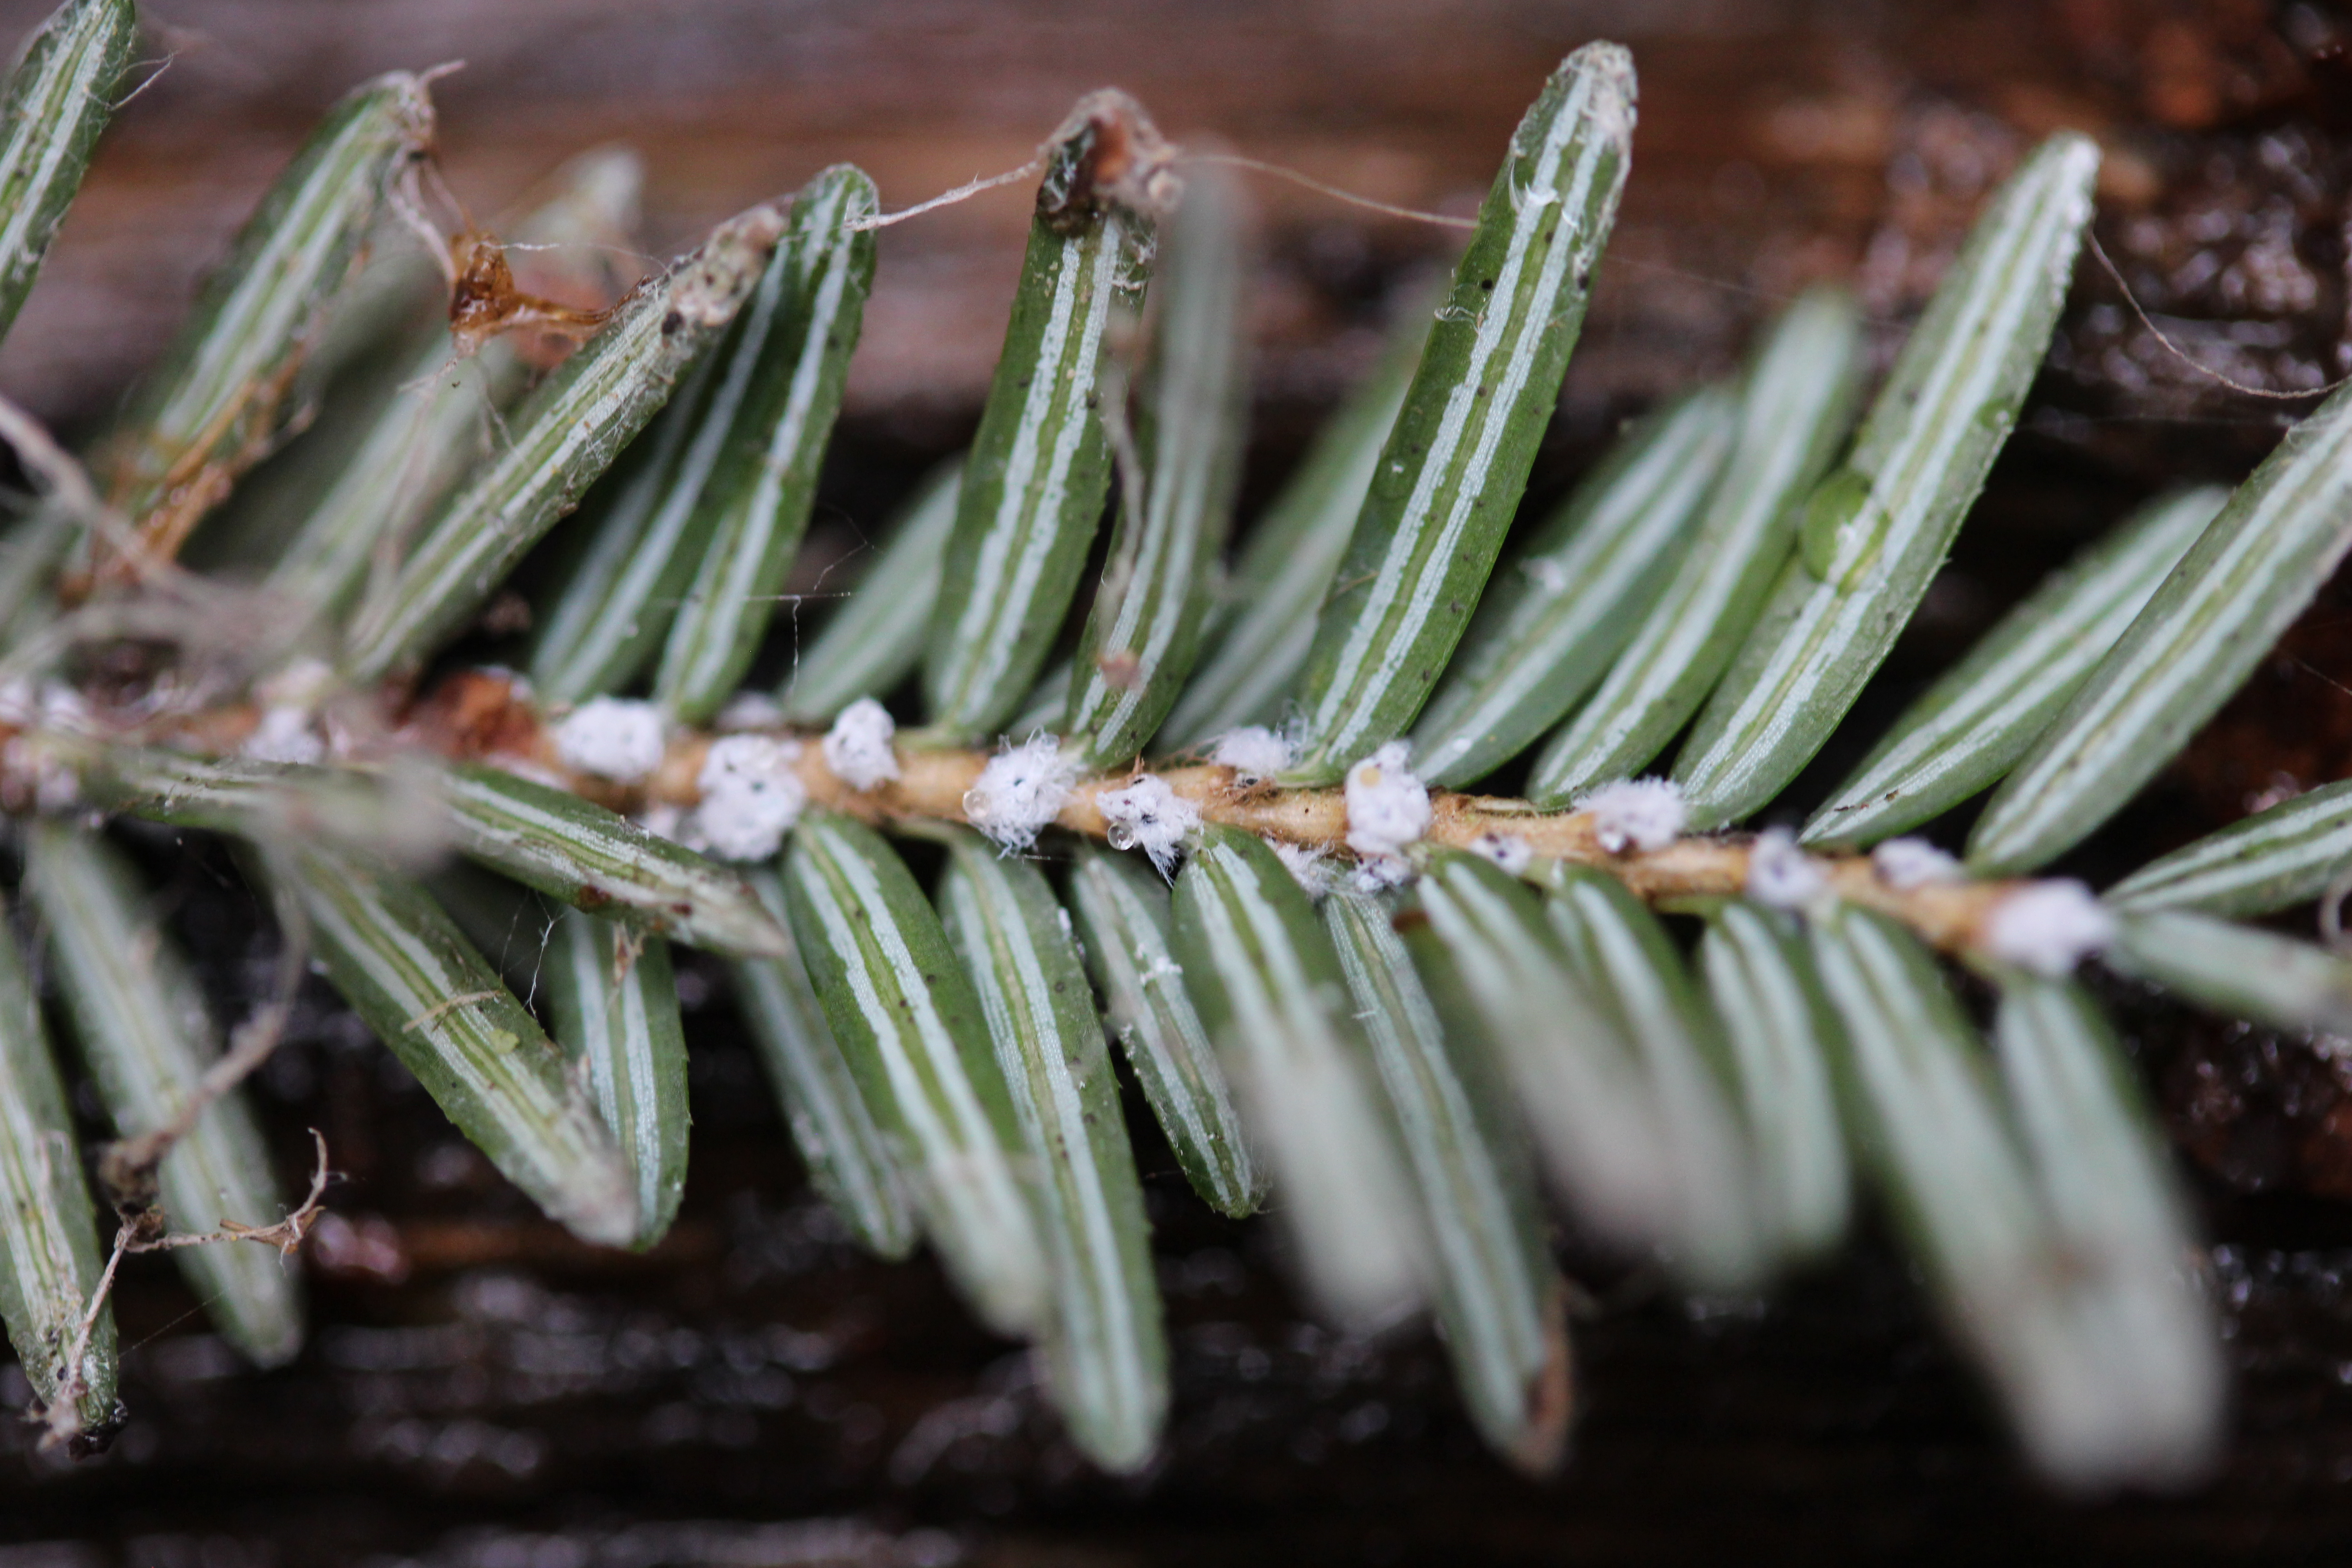 woolly covering on adelgid